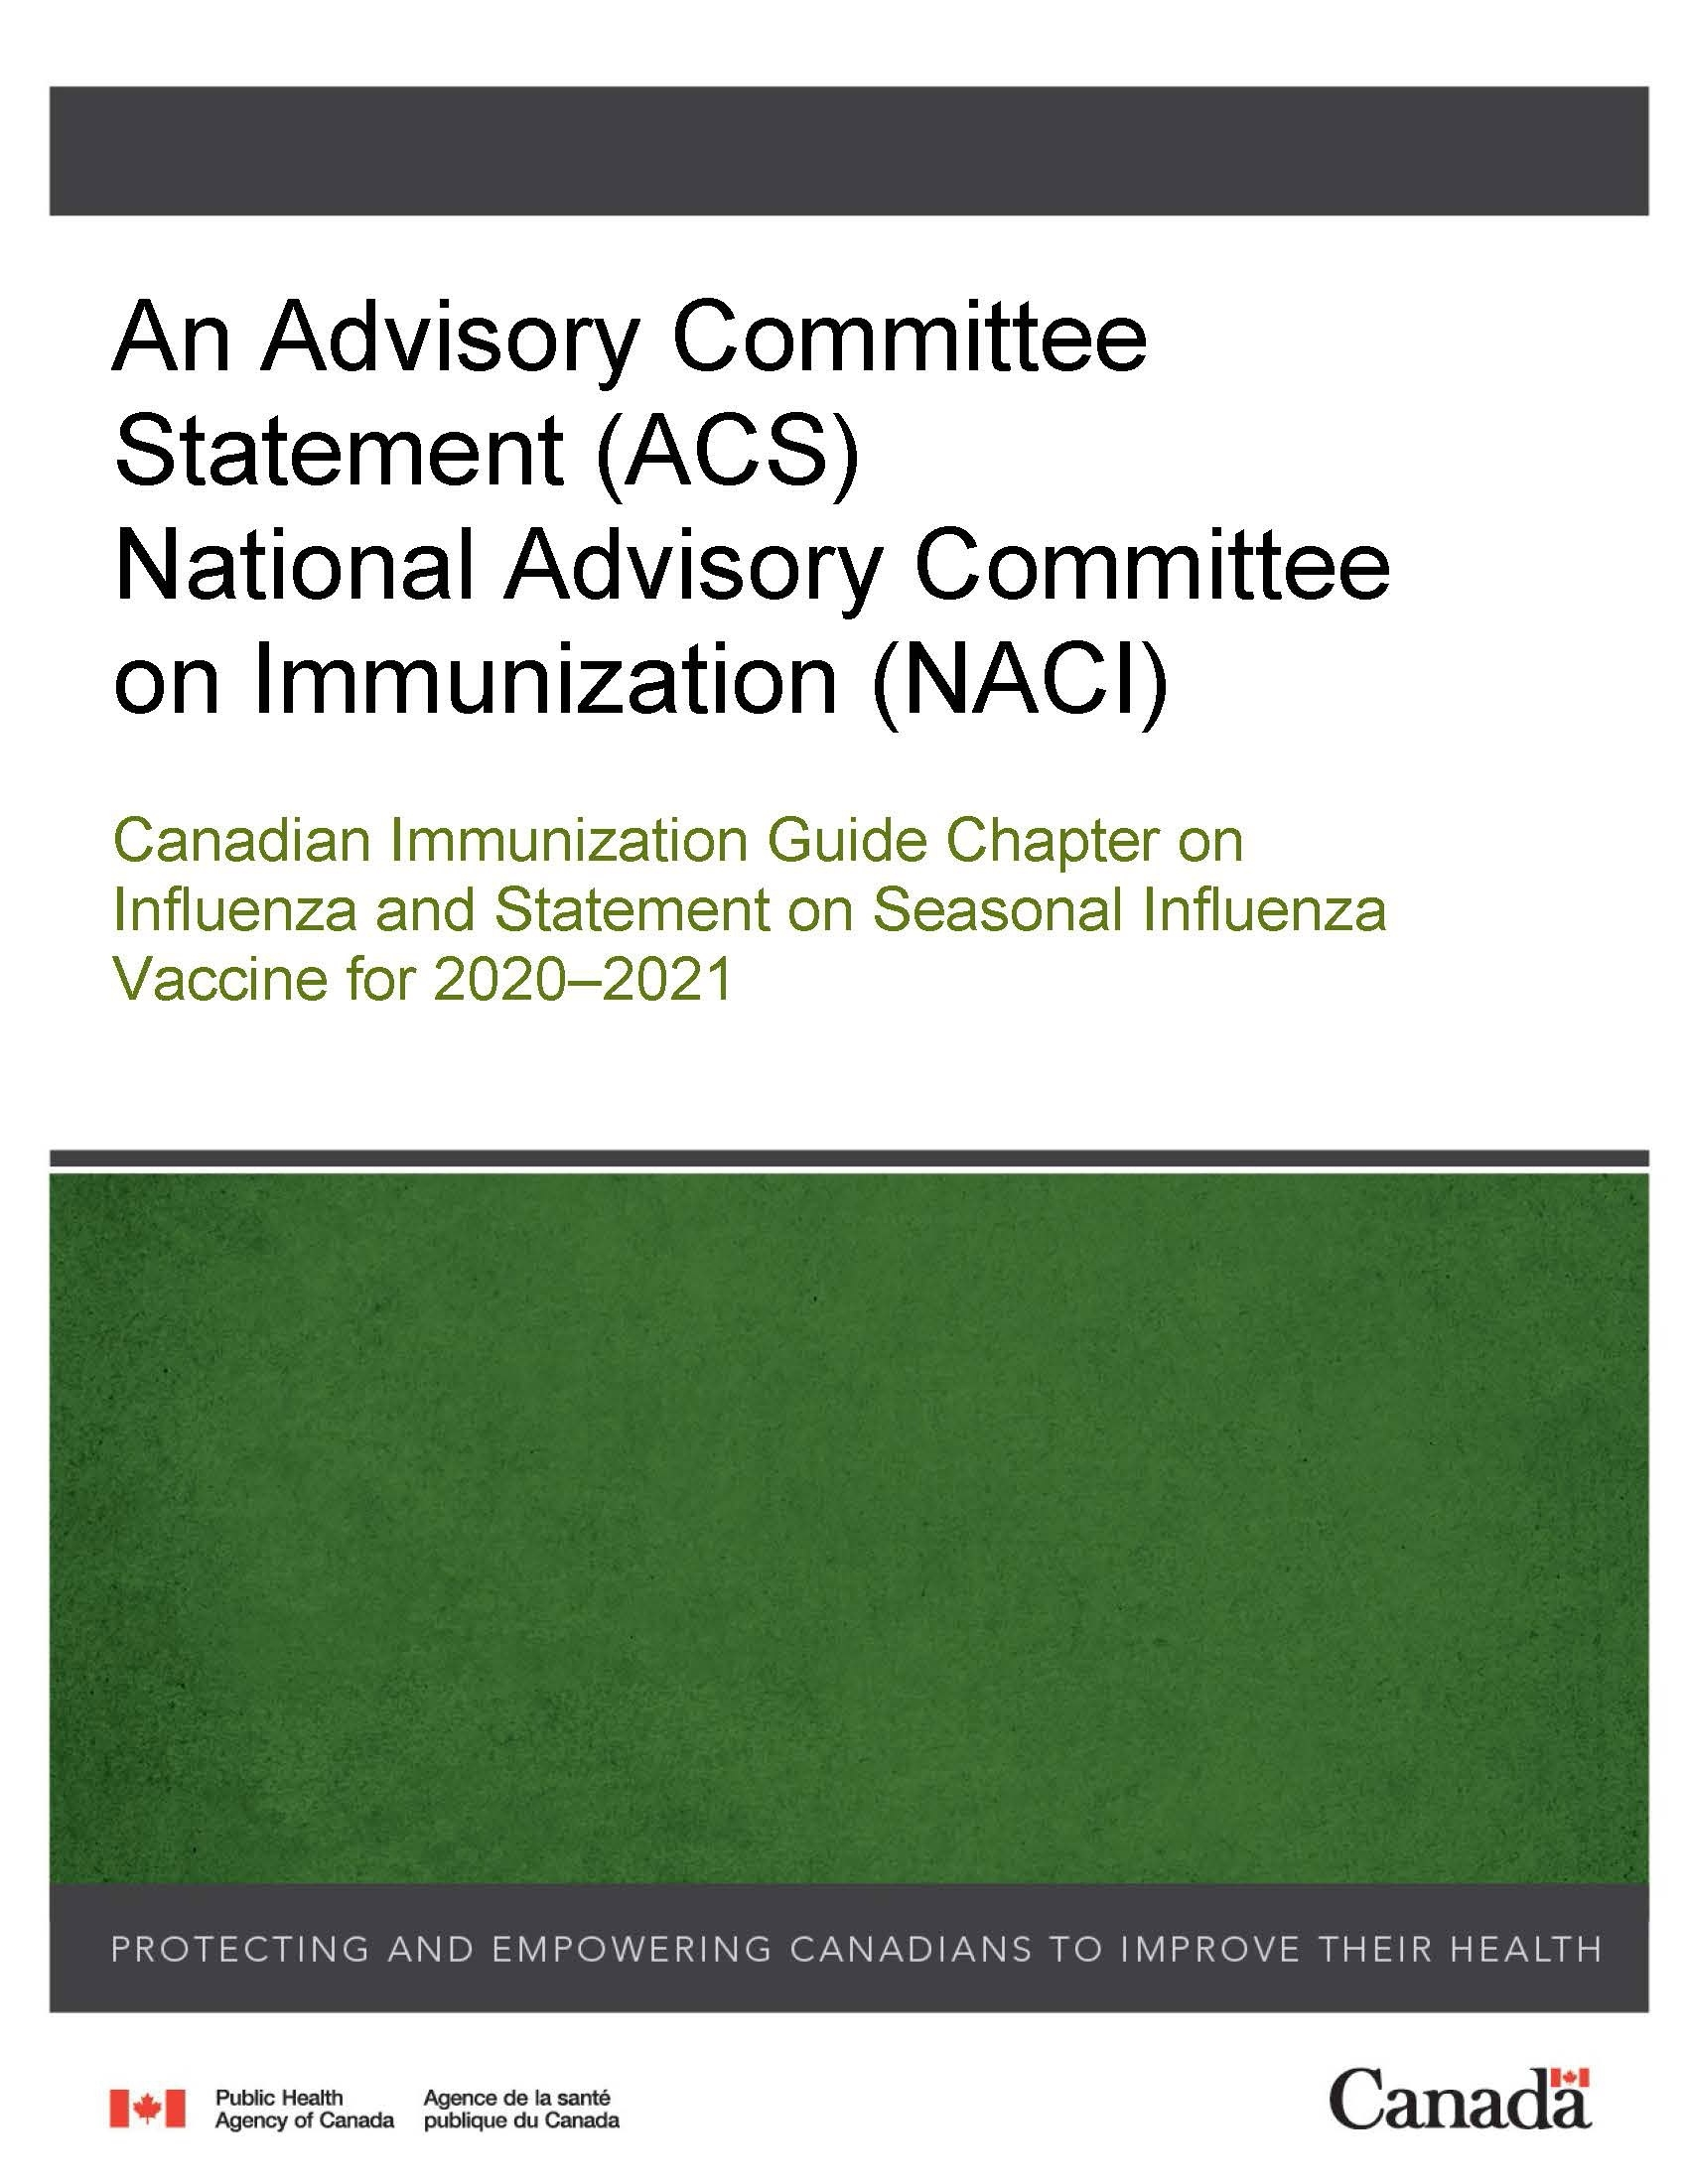 Canadian Immunization Guide Chapter On Influenza And